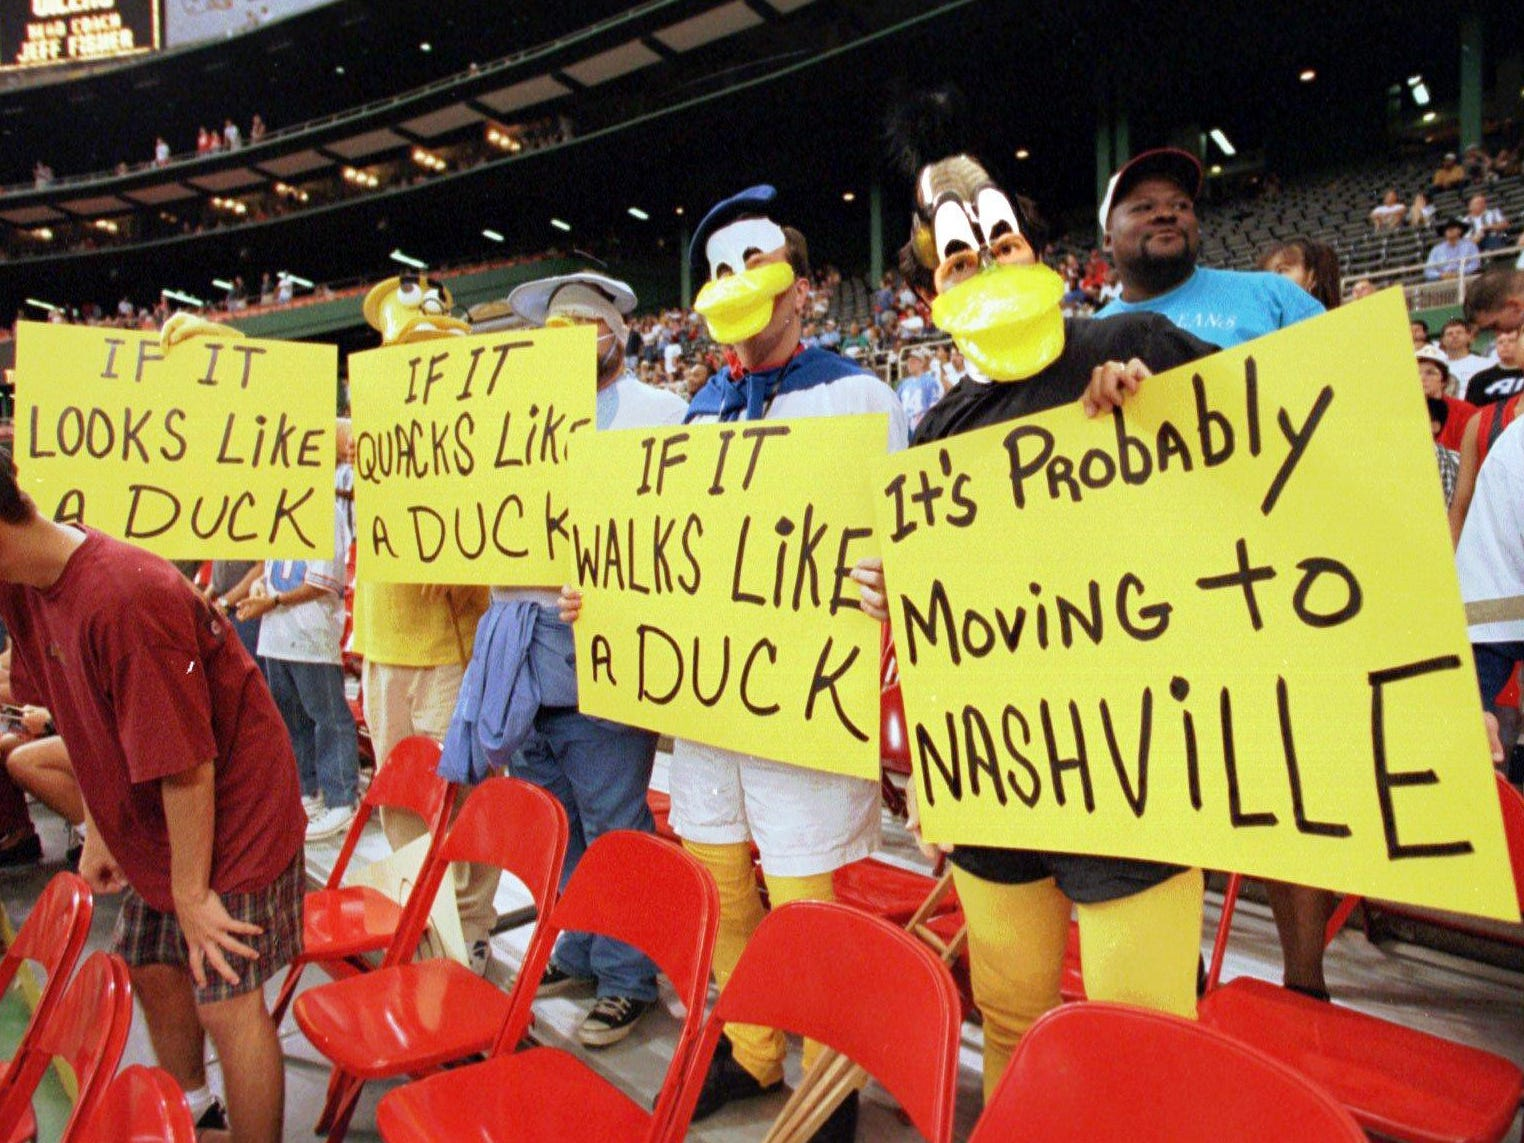 Wearing duck beaks, Paul Mewis, left, David Wyborny, Geoff Hutson and Paul Tepikian make comments on the Houston Oilers' planned move to Nashville next season during the Sept. 1, 1996 game against the Kansas City Chiefs in Houston.